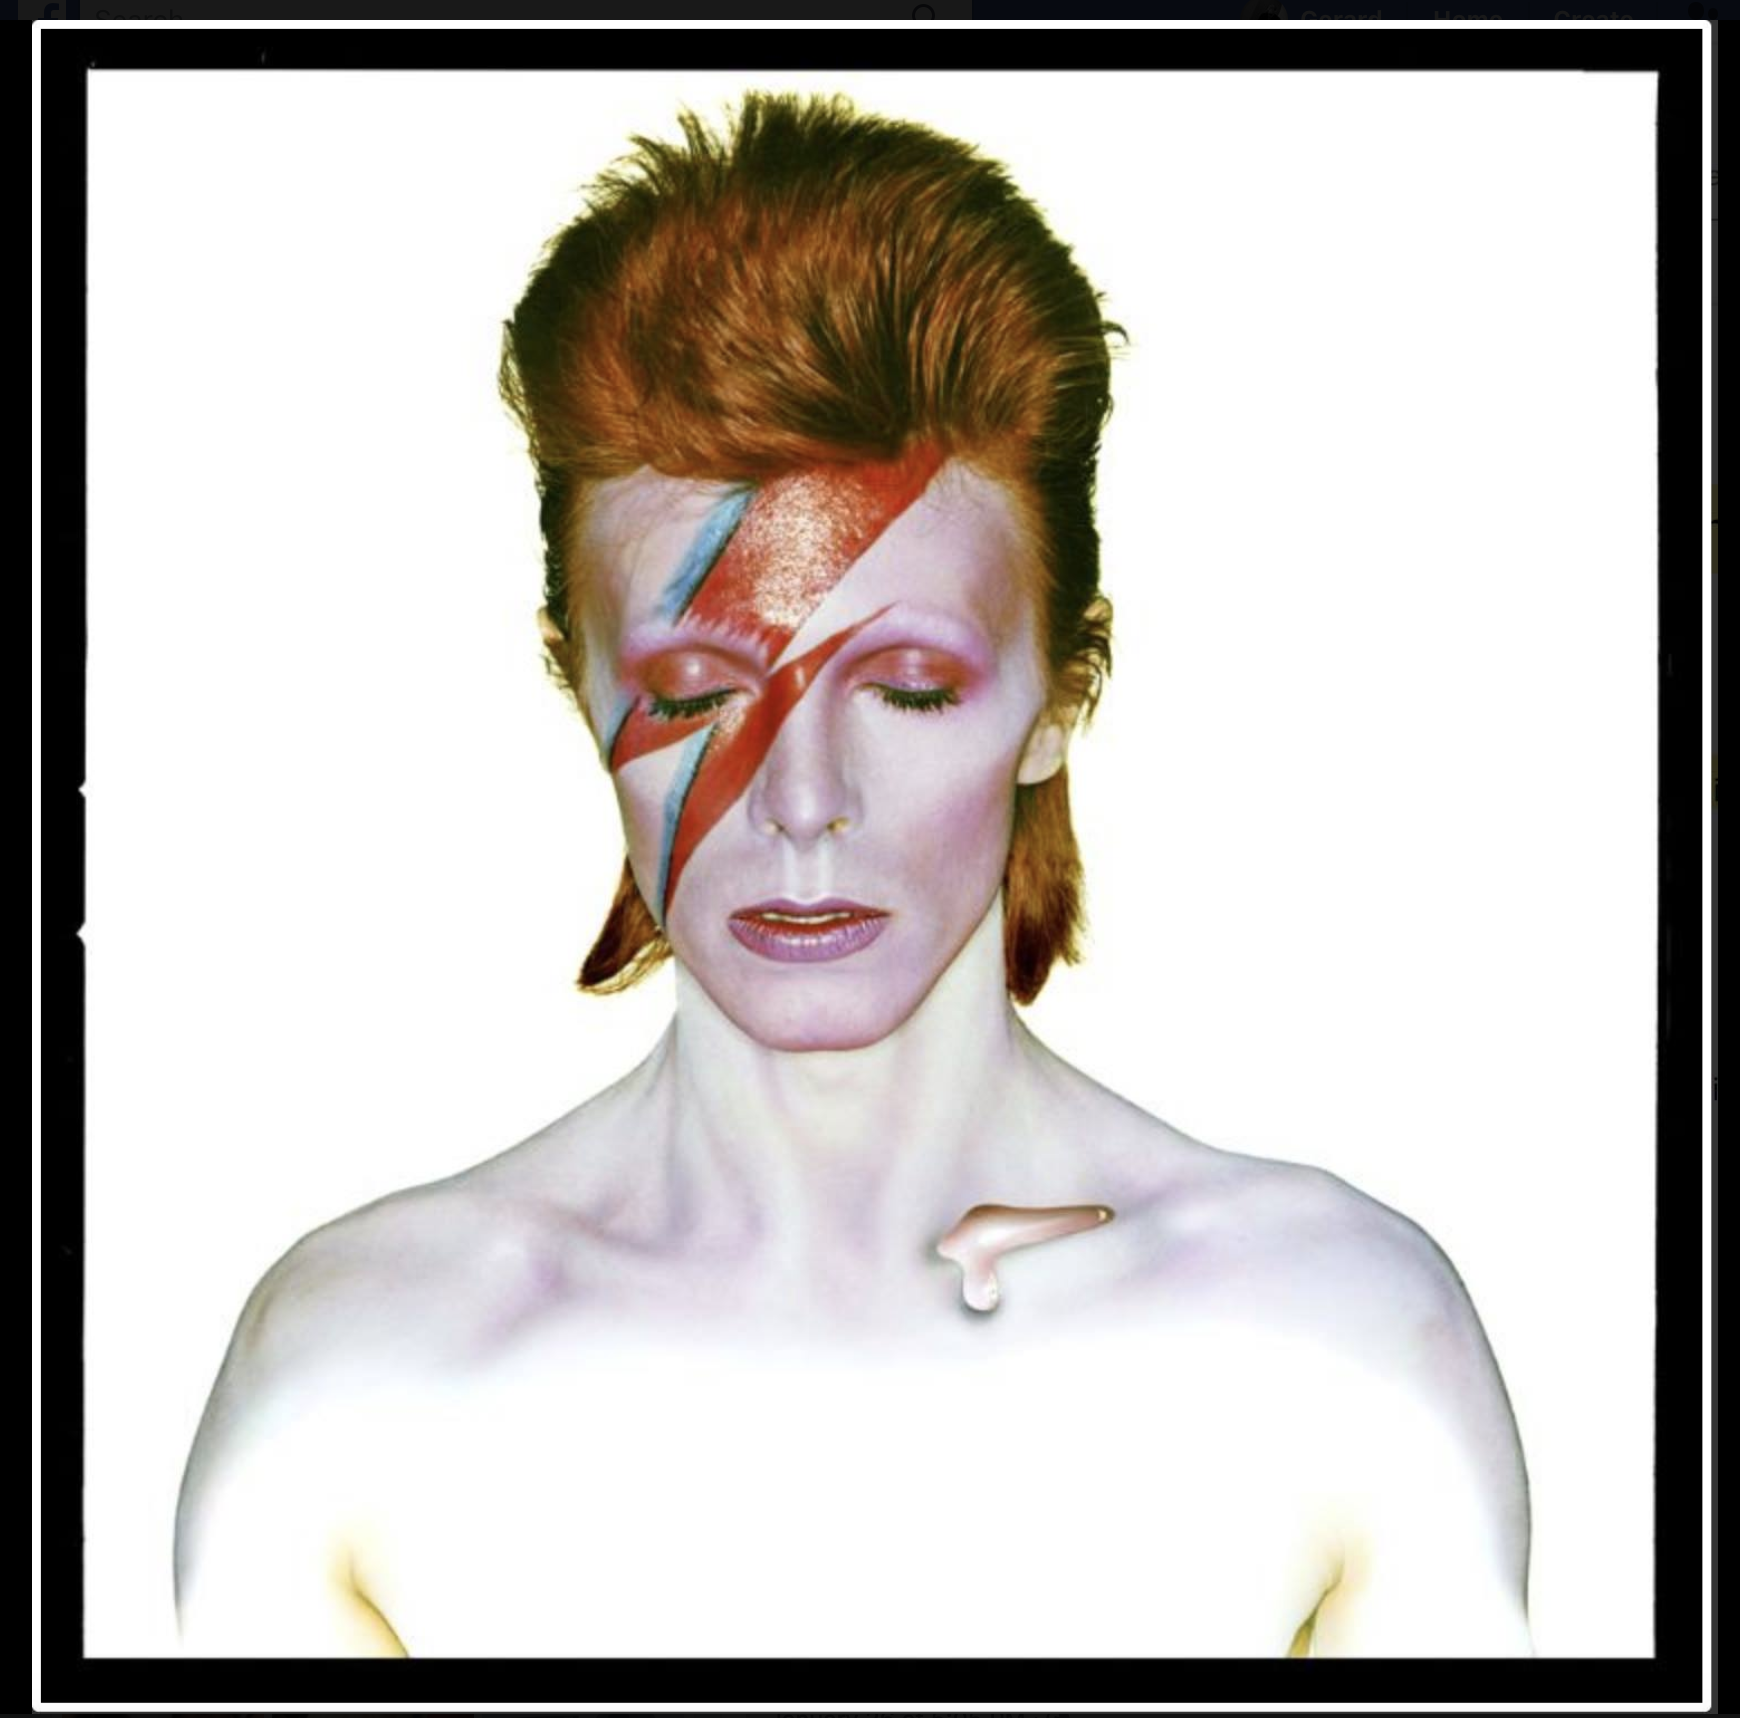 David Bowie as Aladdin Sane 1973